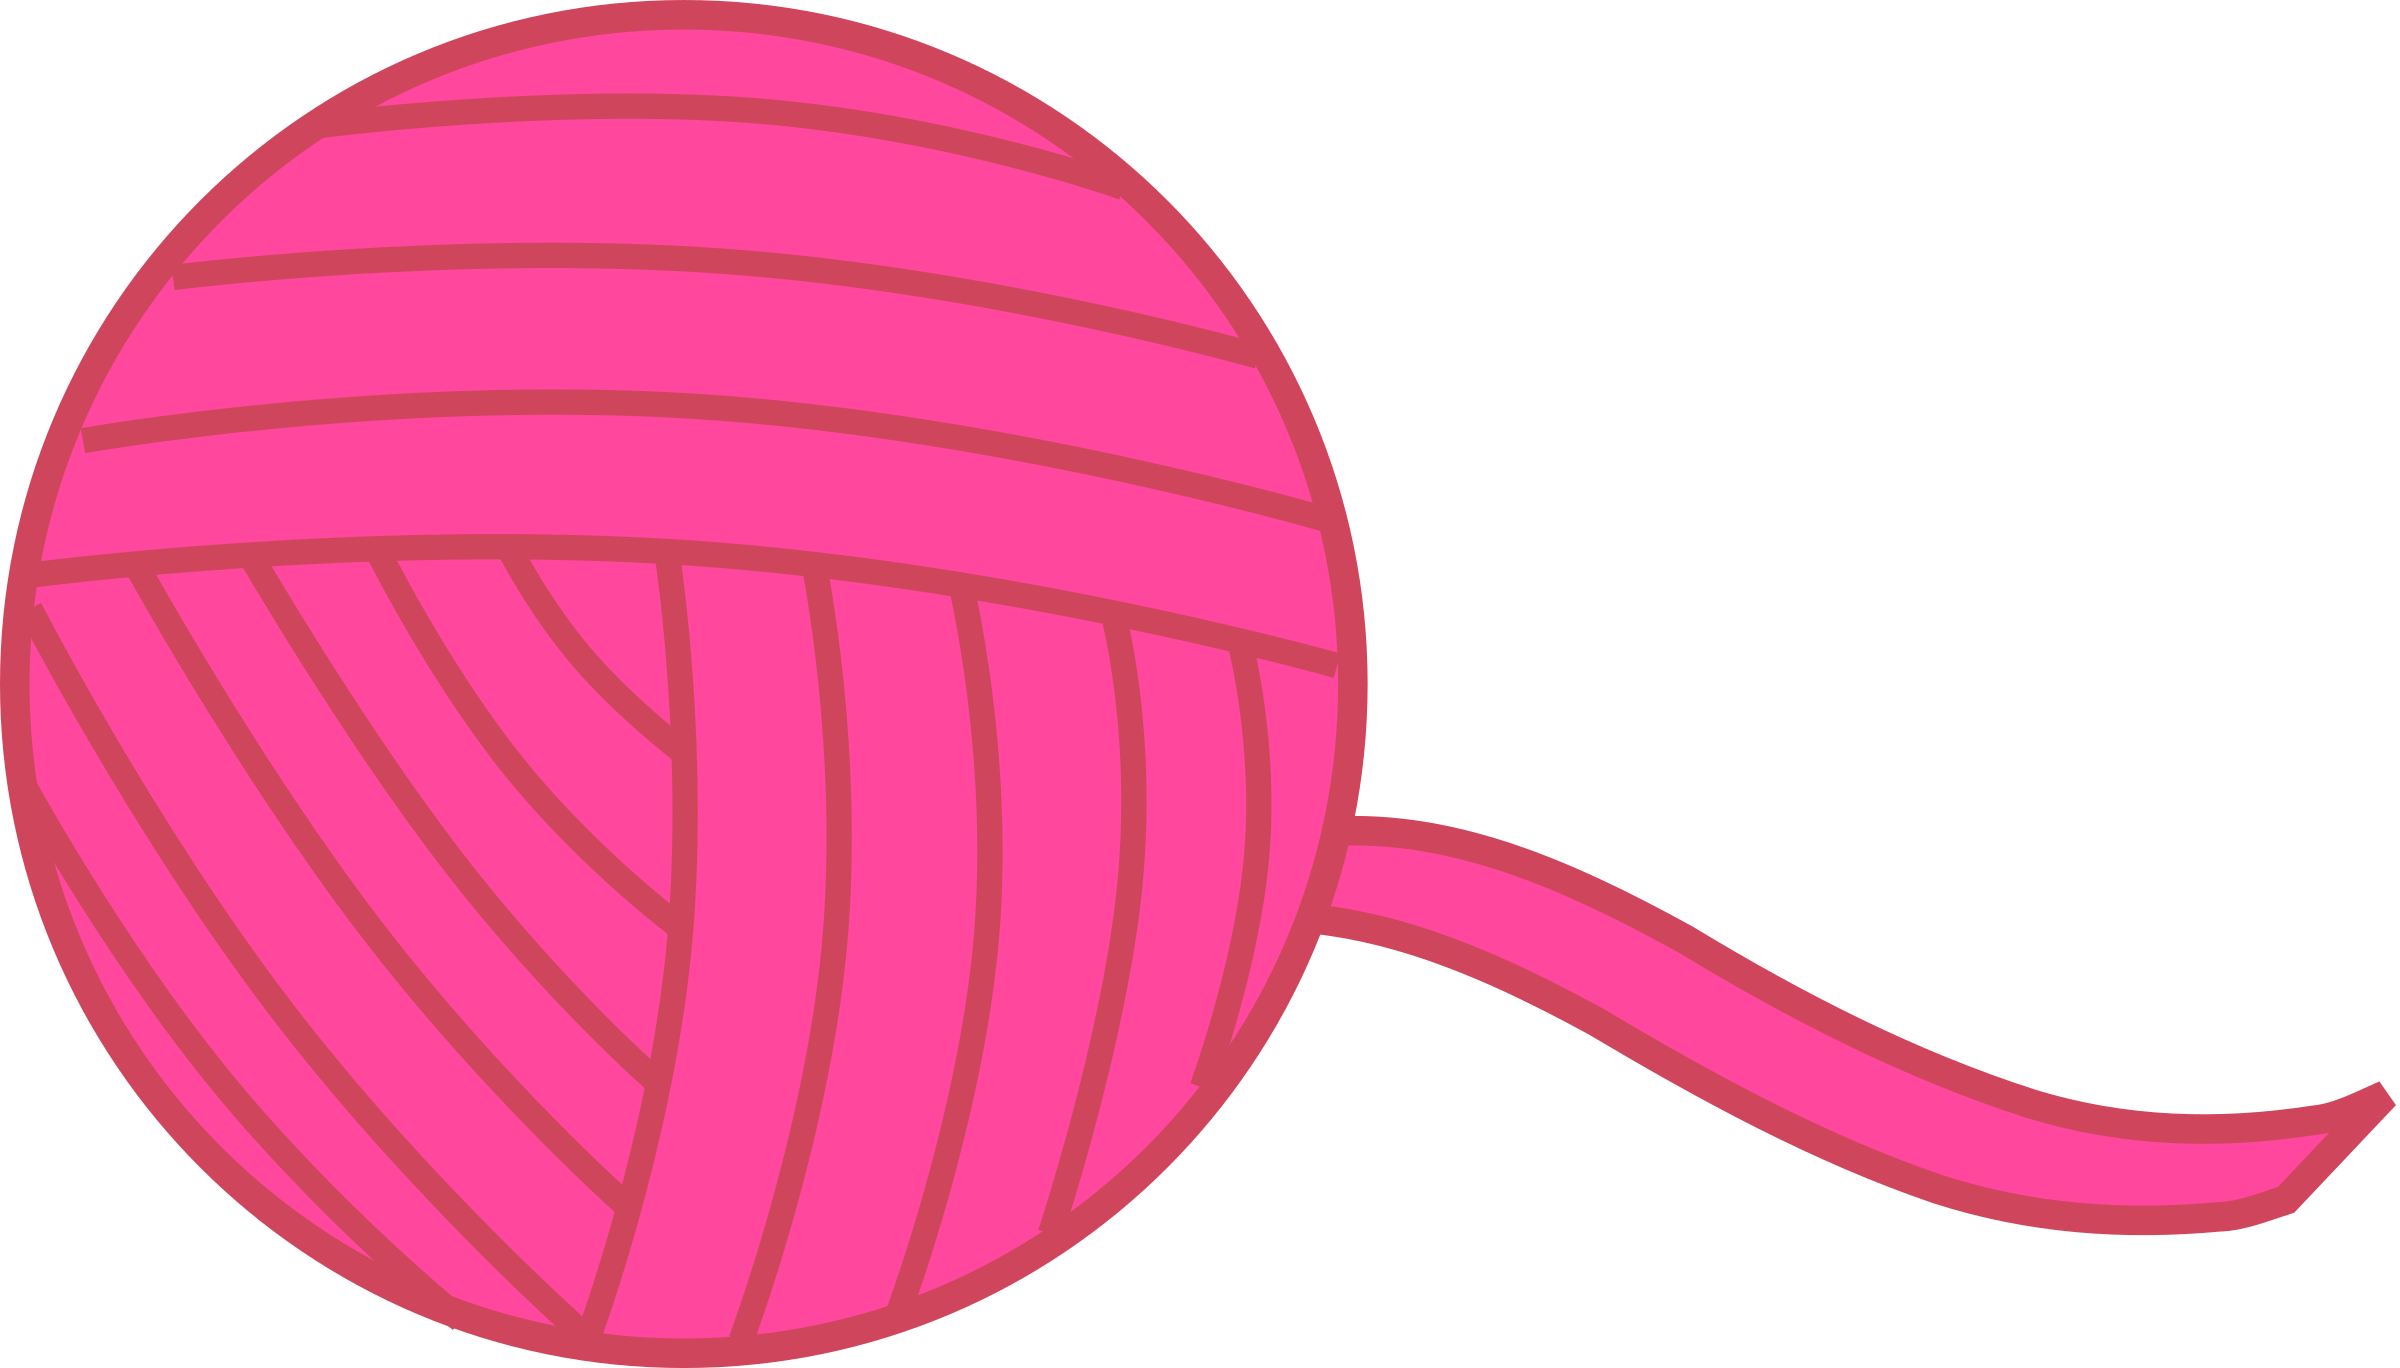 clipart String clipart. Shining design pink ball